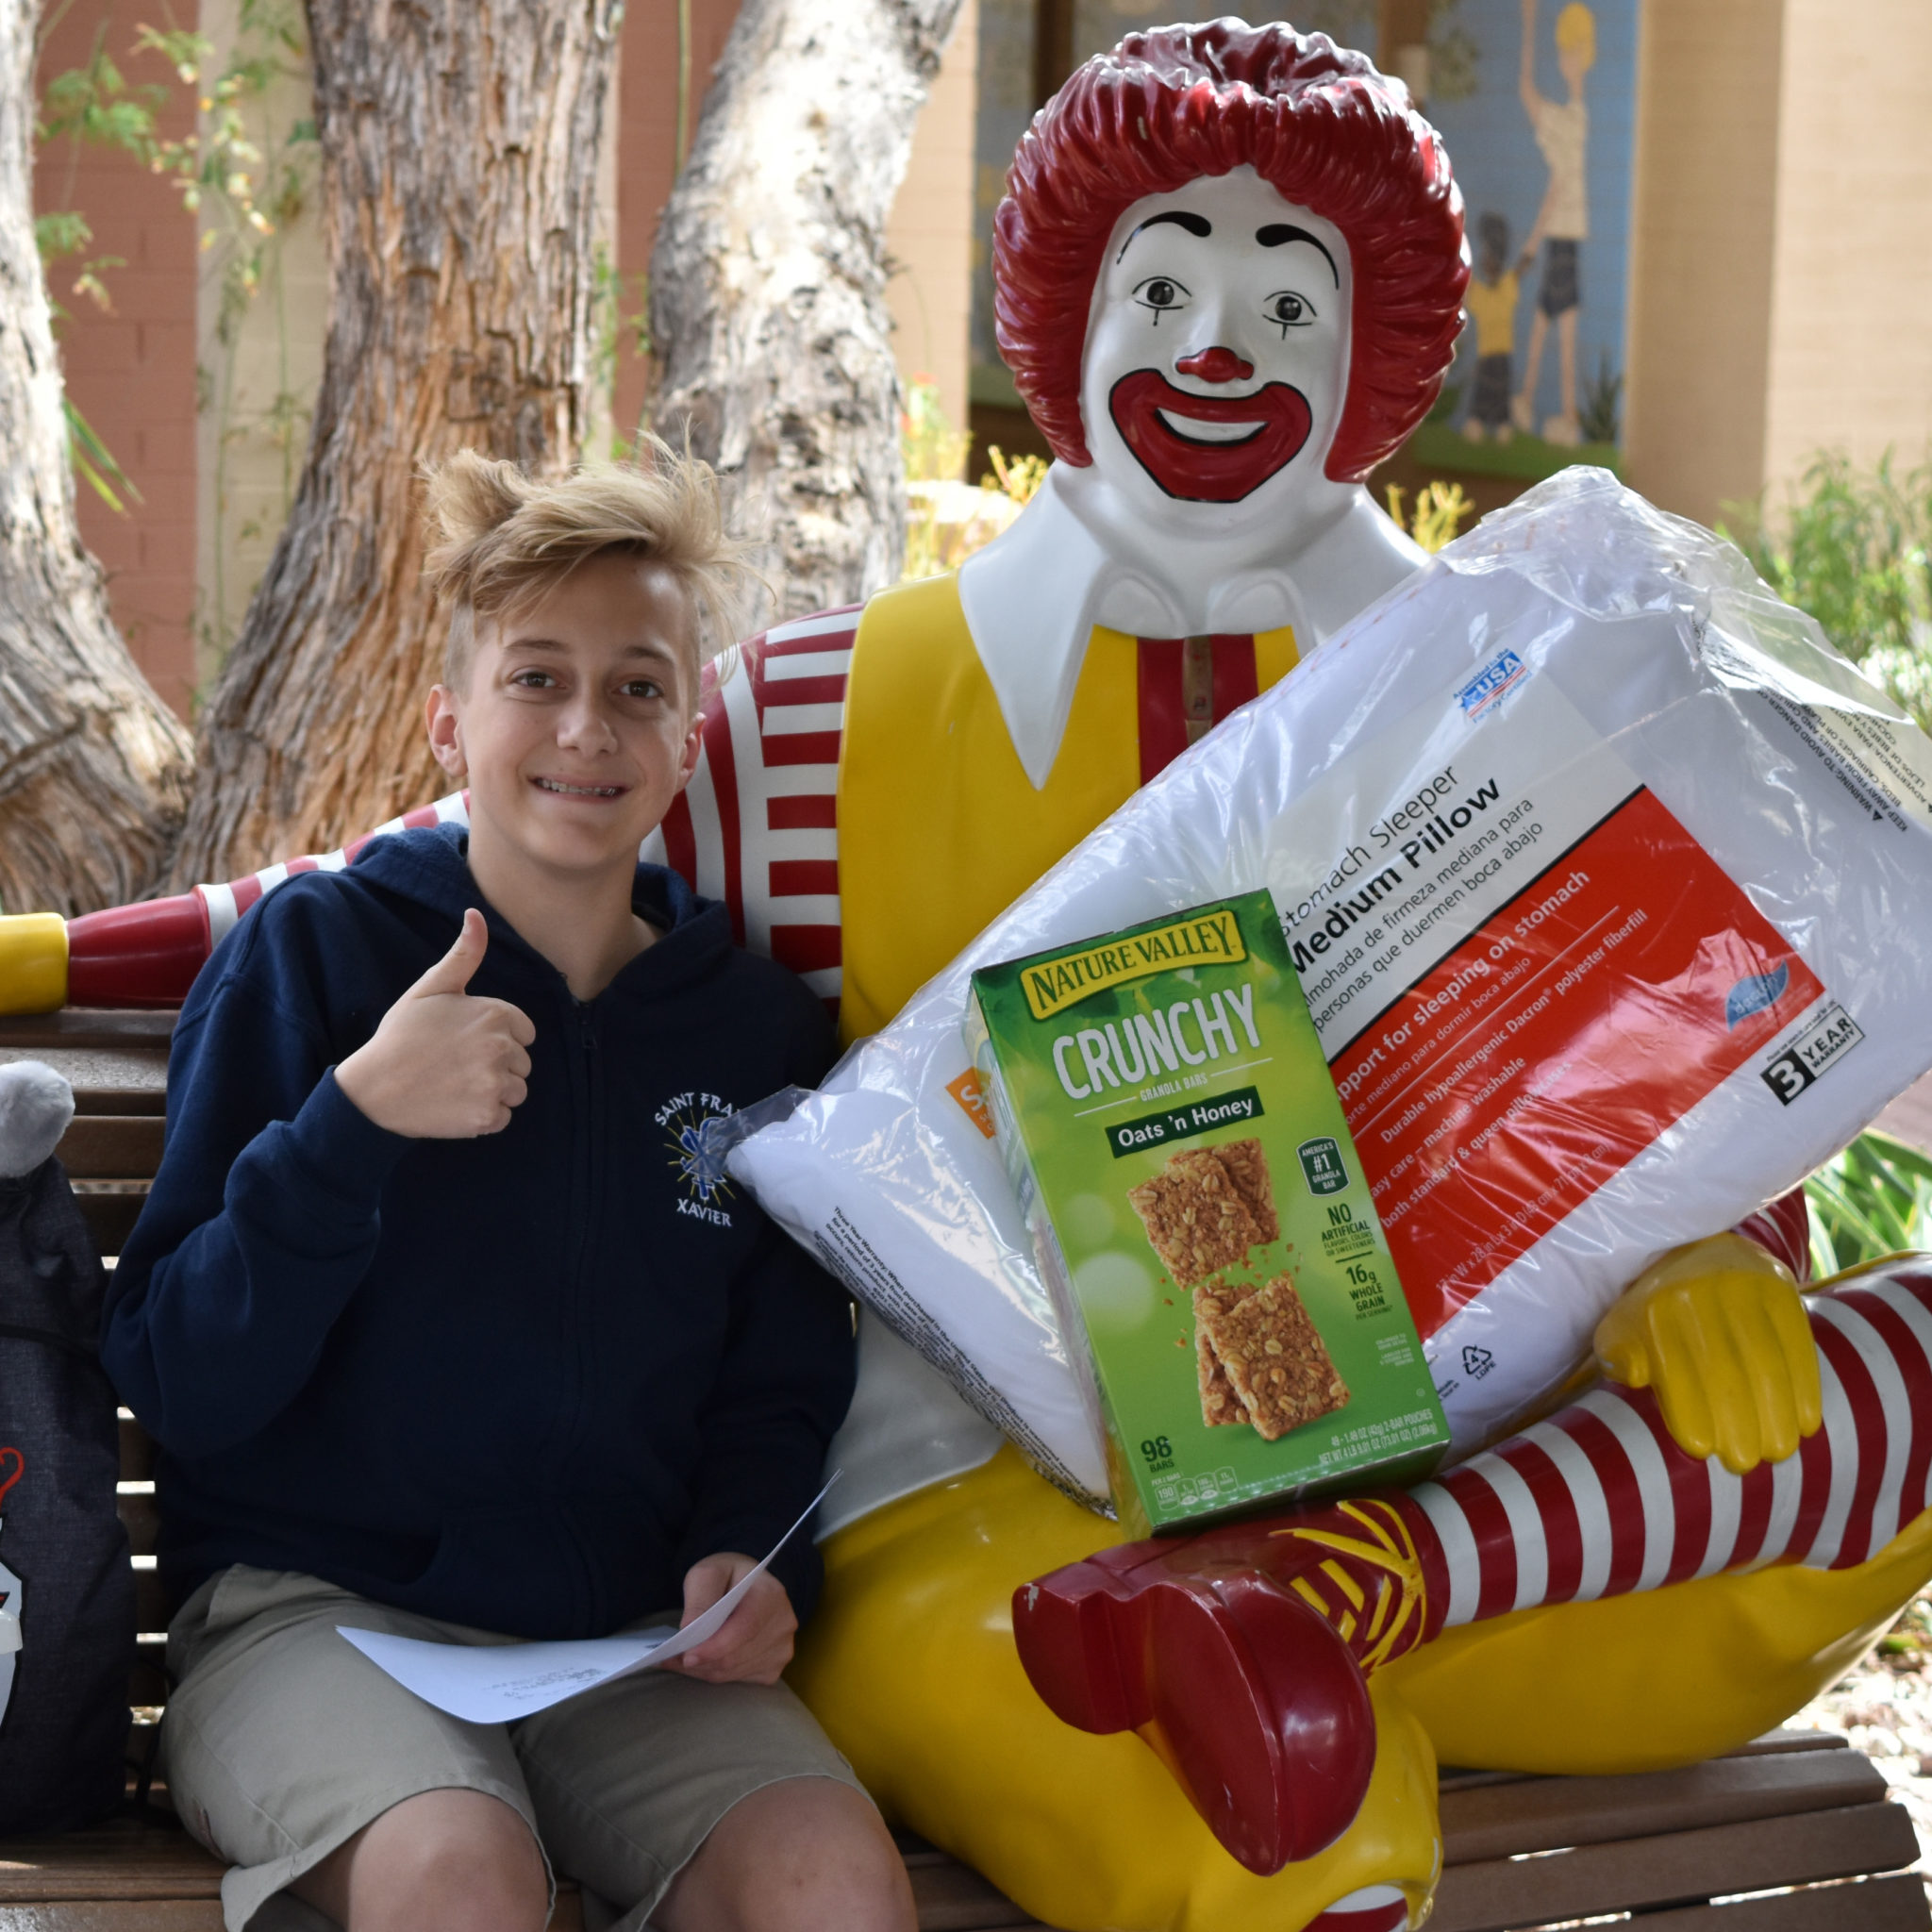 Tennage boy posing on the Ronald McDonald bench with donated items